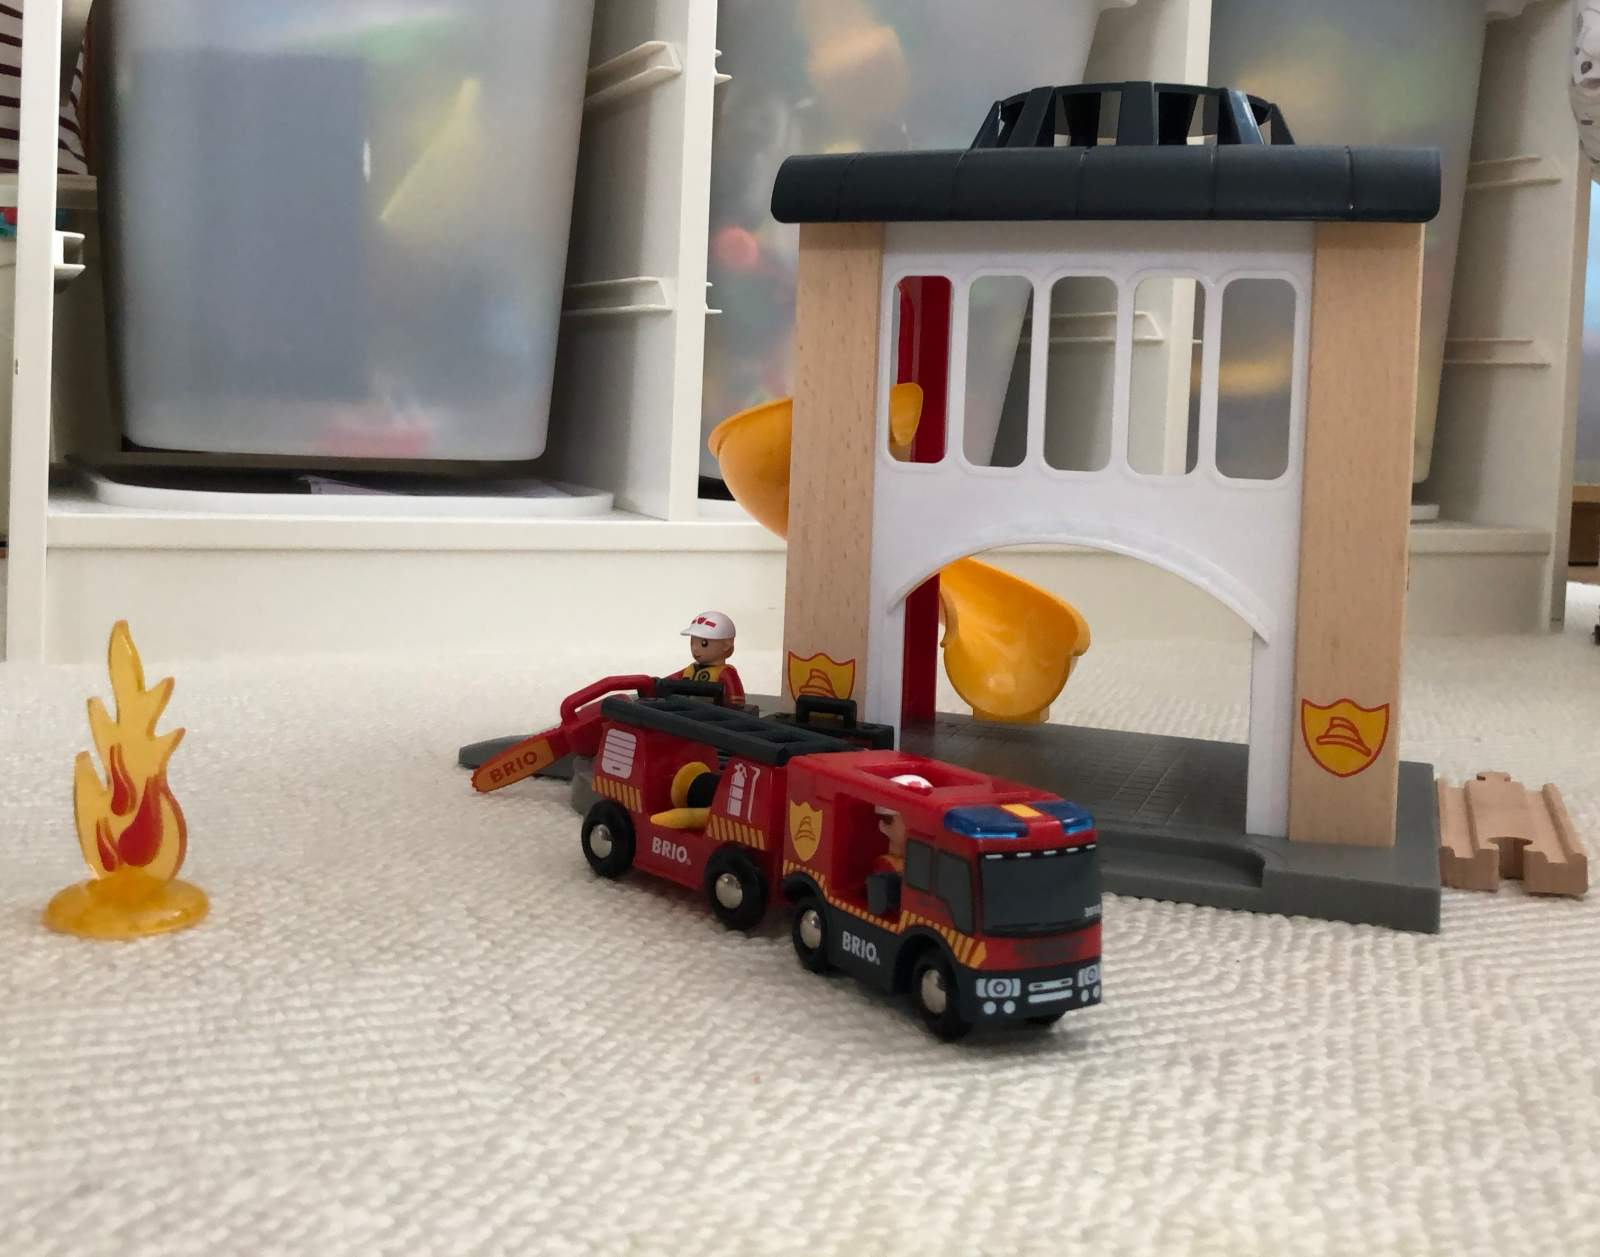 BRIO Fire Station [REVIEW]